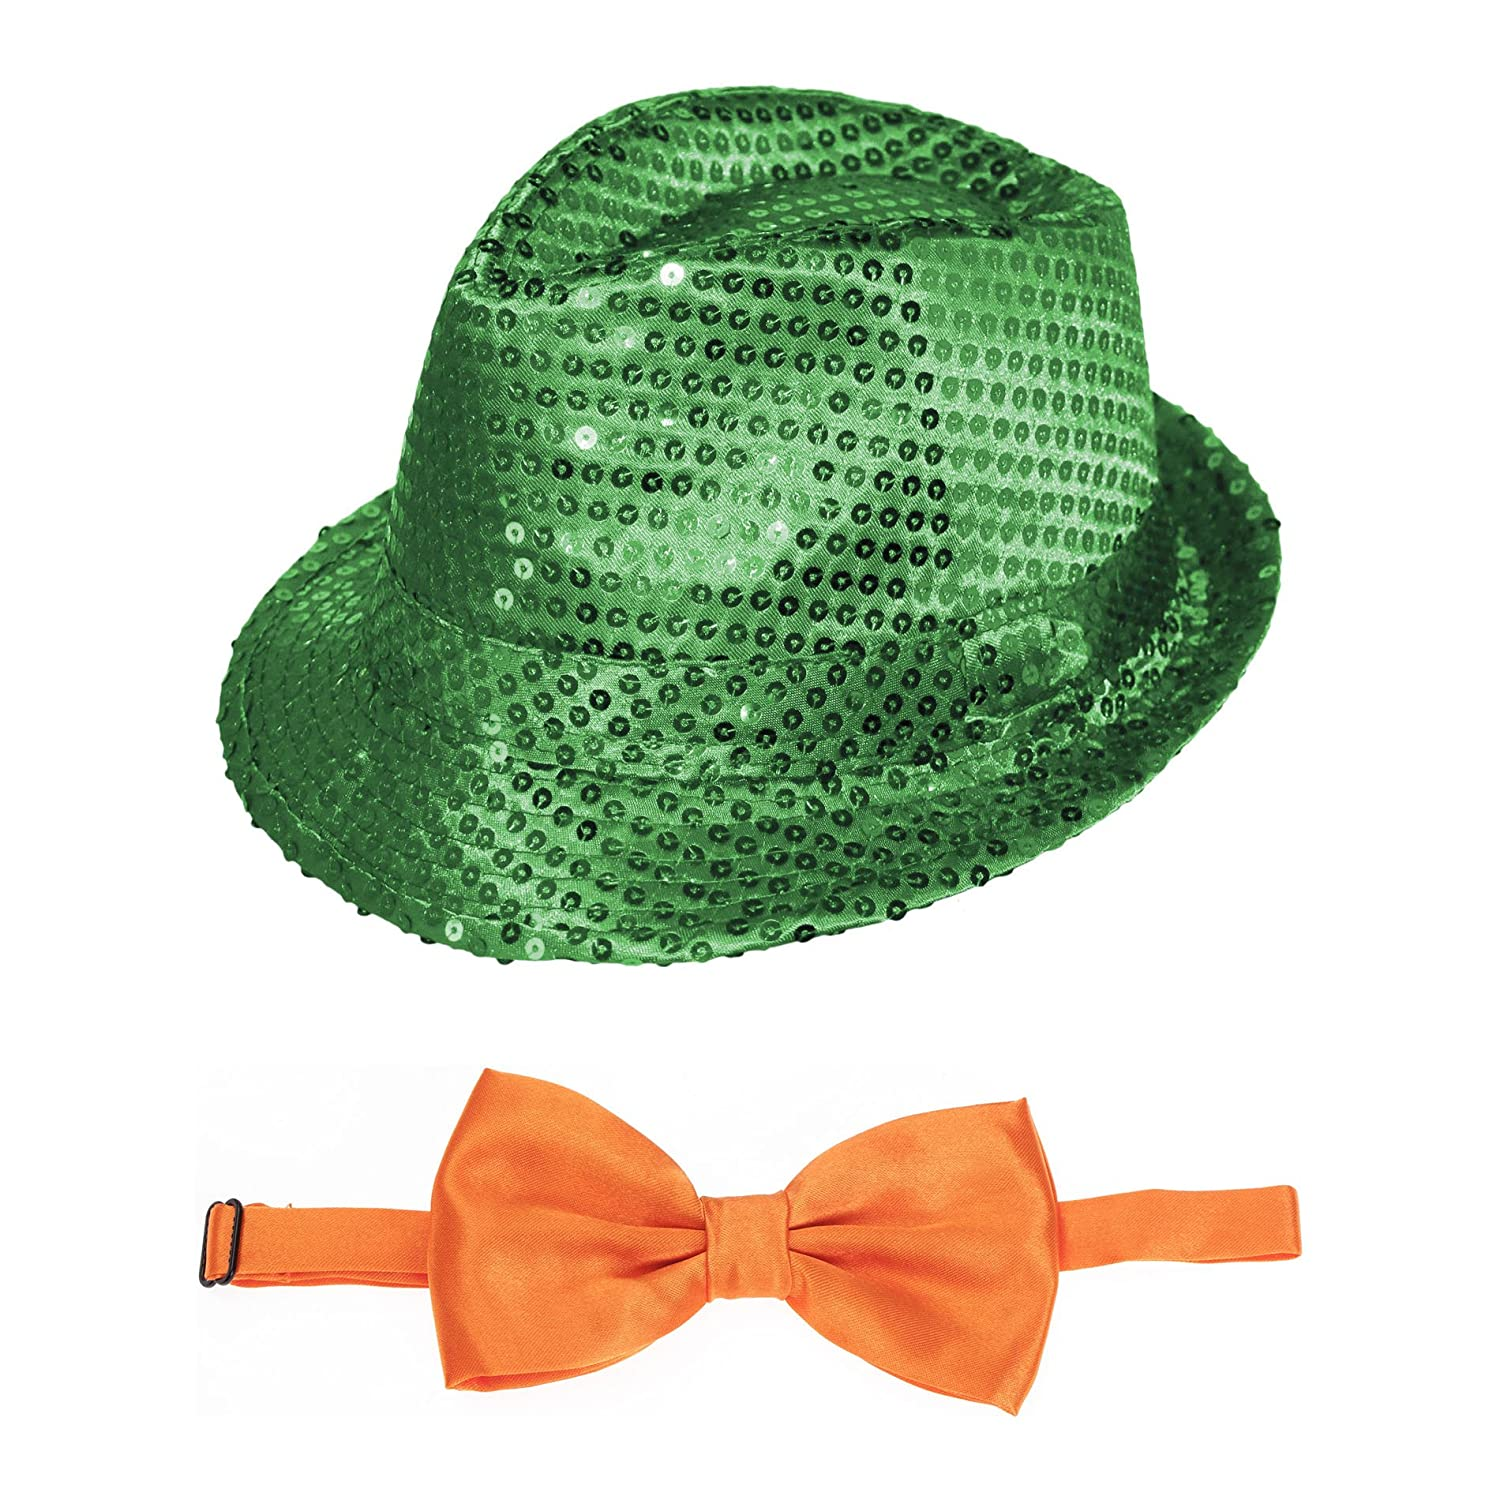 dd659851886 Details about St Patrick s Day Green Sequin Fedora Hat   Orange Bow Tie  Fancy Dress